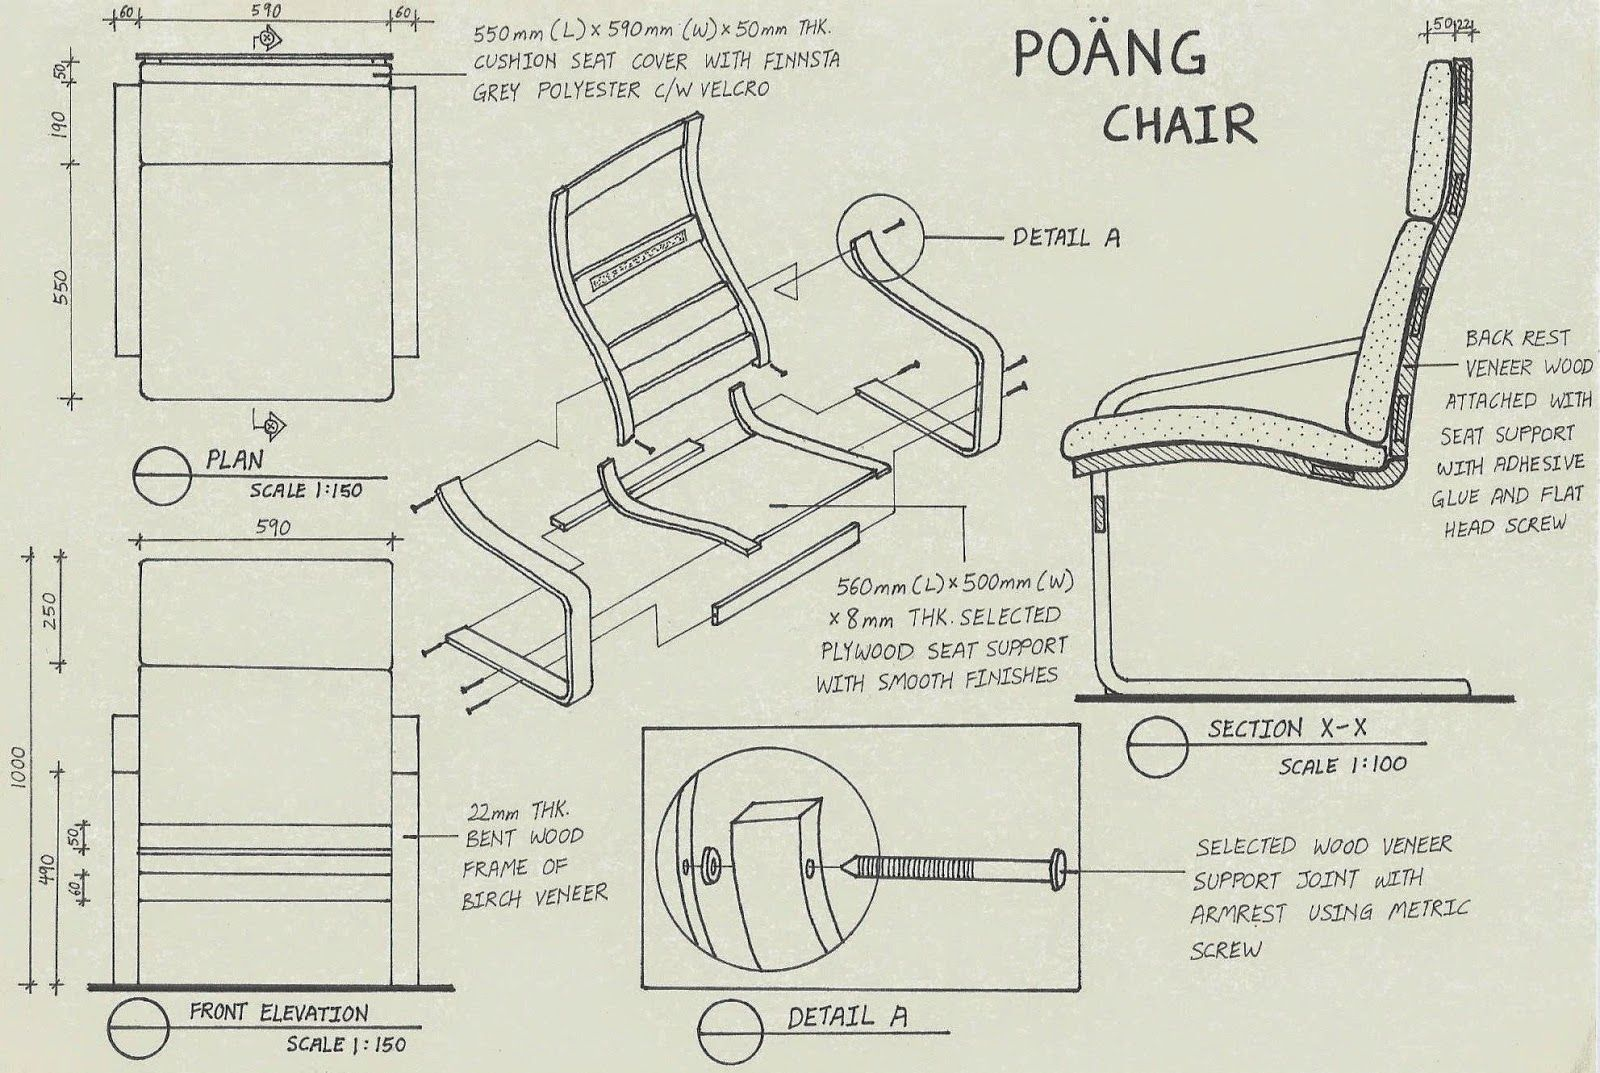 ikea poang chair parts stool bar chairs yii min in design assembly drawing by